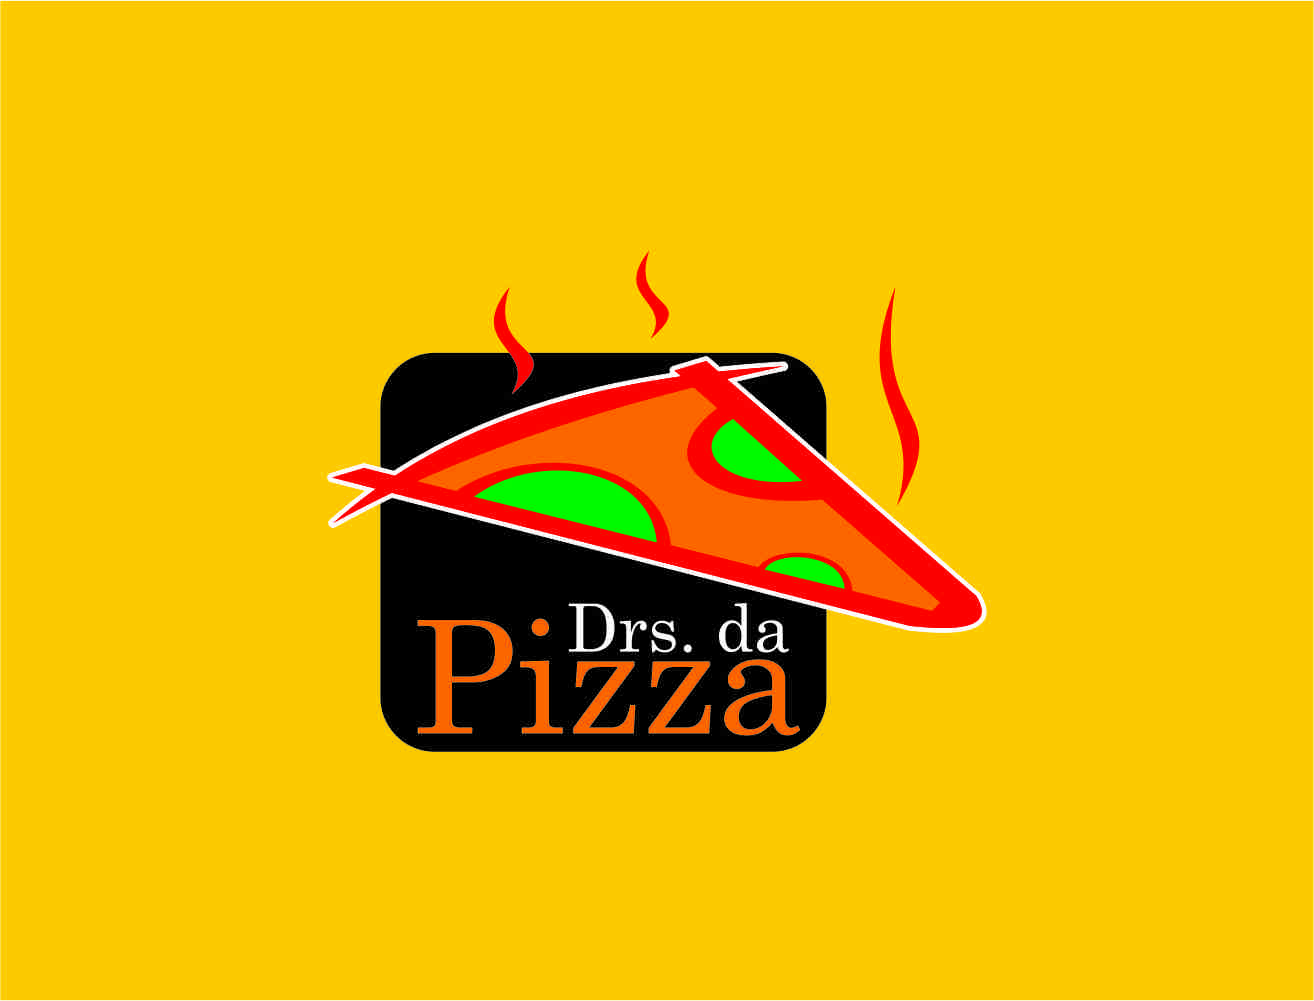 Logo-Pizzaria - DRS. DA PIZZA